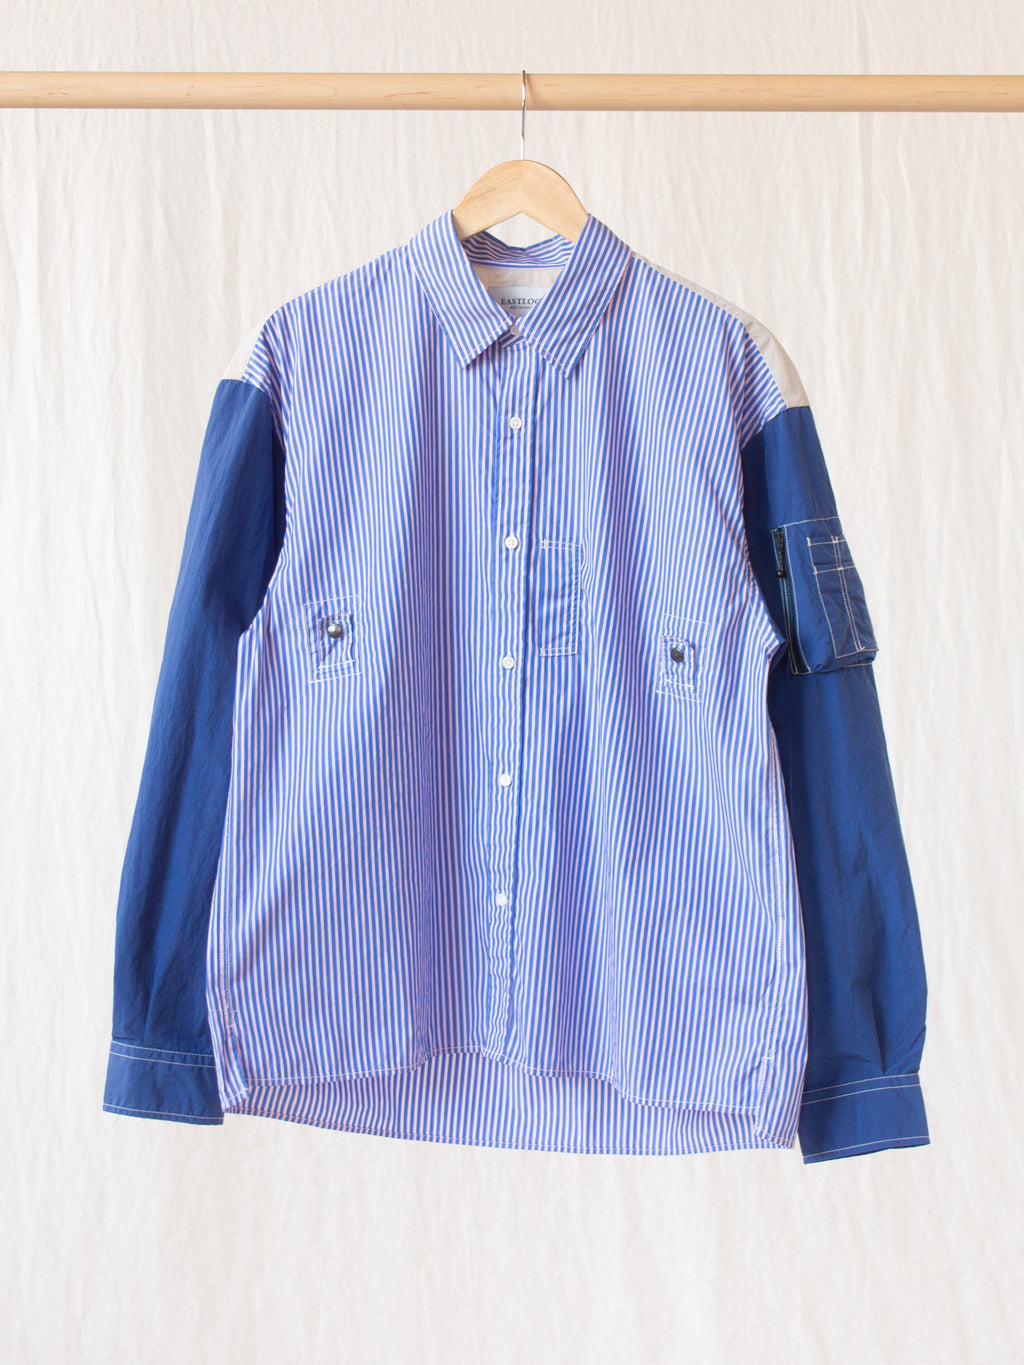 Namu Shop - Eastlogue MA-1 Shirt - Blue Stripe